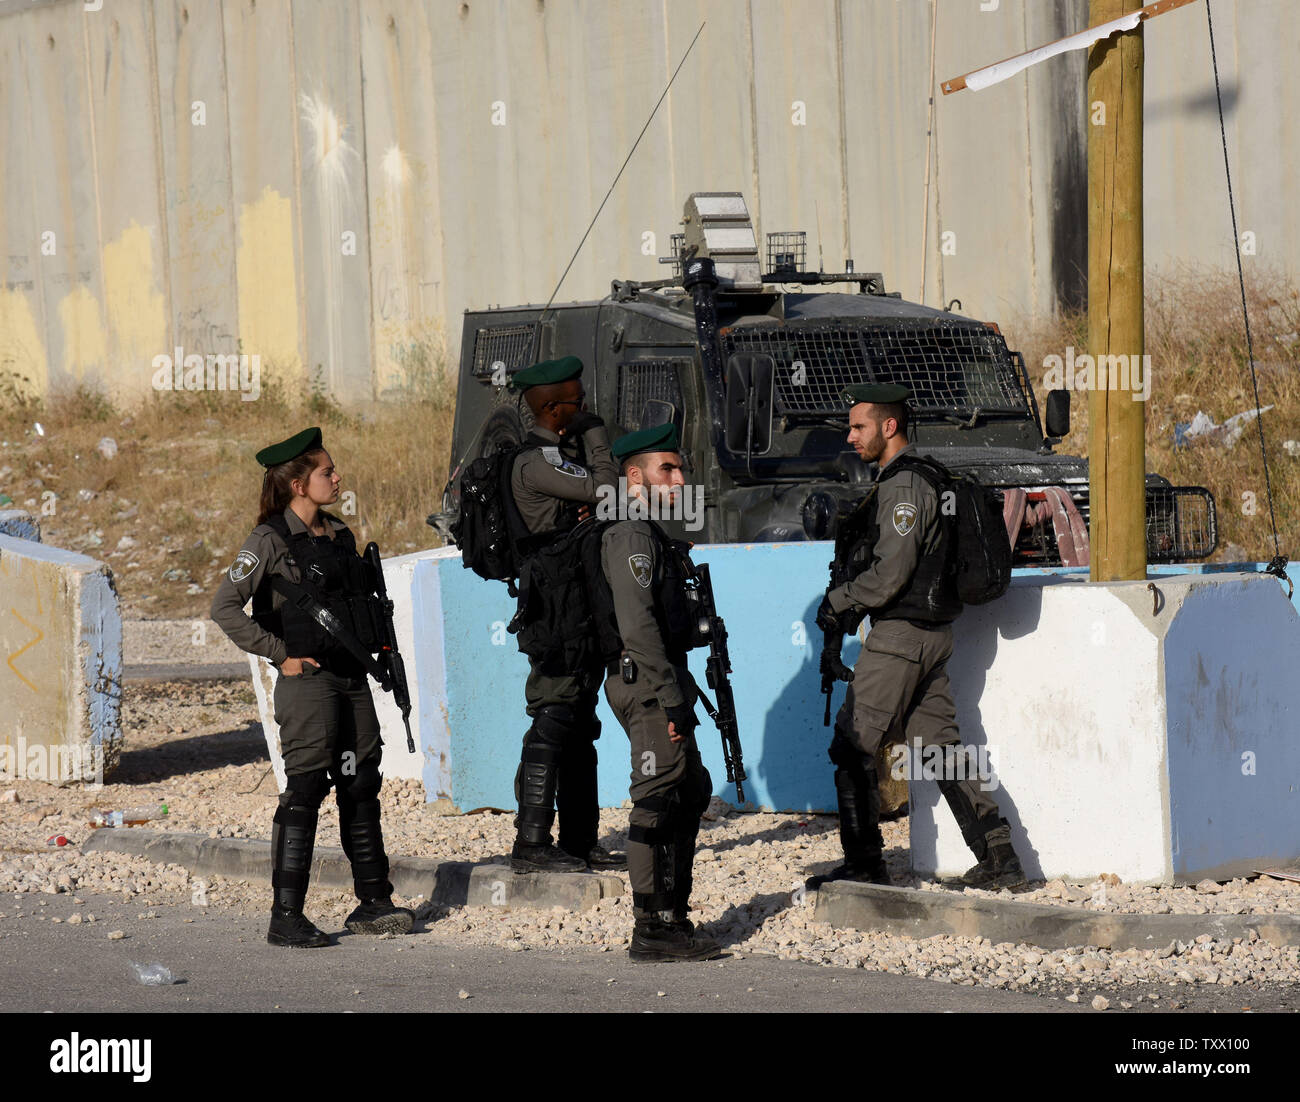 Israeli security forces guard Palestinians, not seen, waiting to cross the Qalandiya checkpoint, West Bank, from Ramallah to Jerusalem, to pray at the Al-Aqsa Mosque on the last Friday of the Muslim holy month of Ramadan, June 8, 2018.  Photo by Debbie Hill/UPI - Stock Image